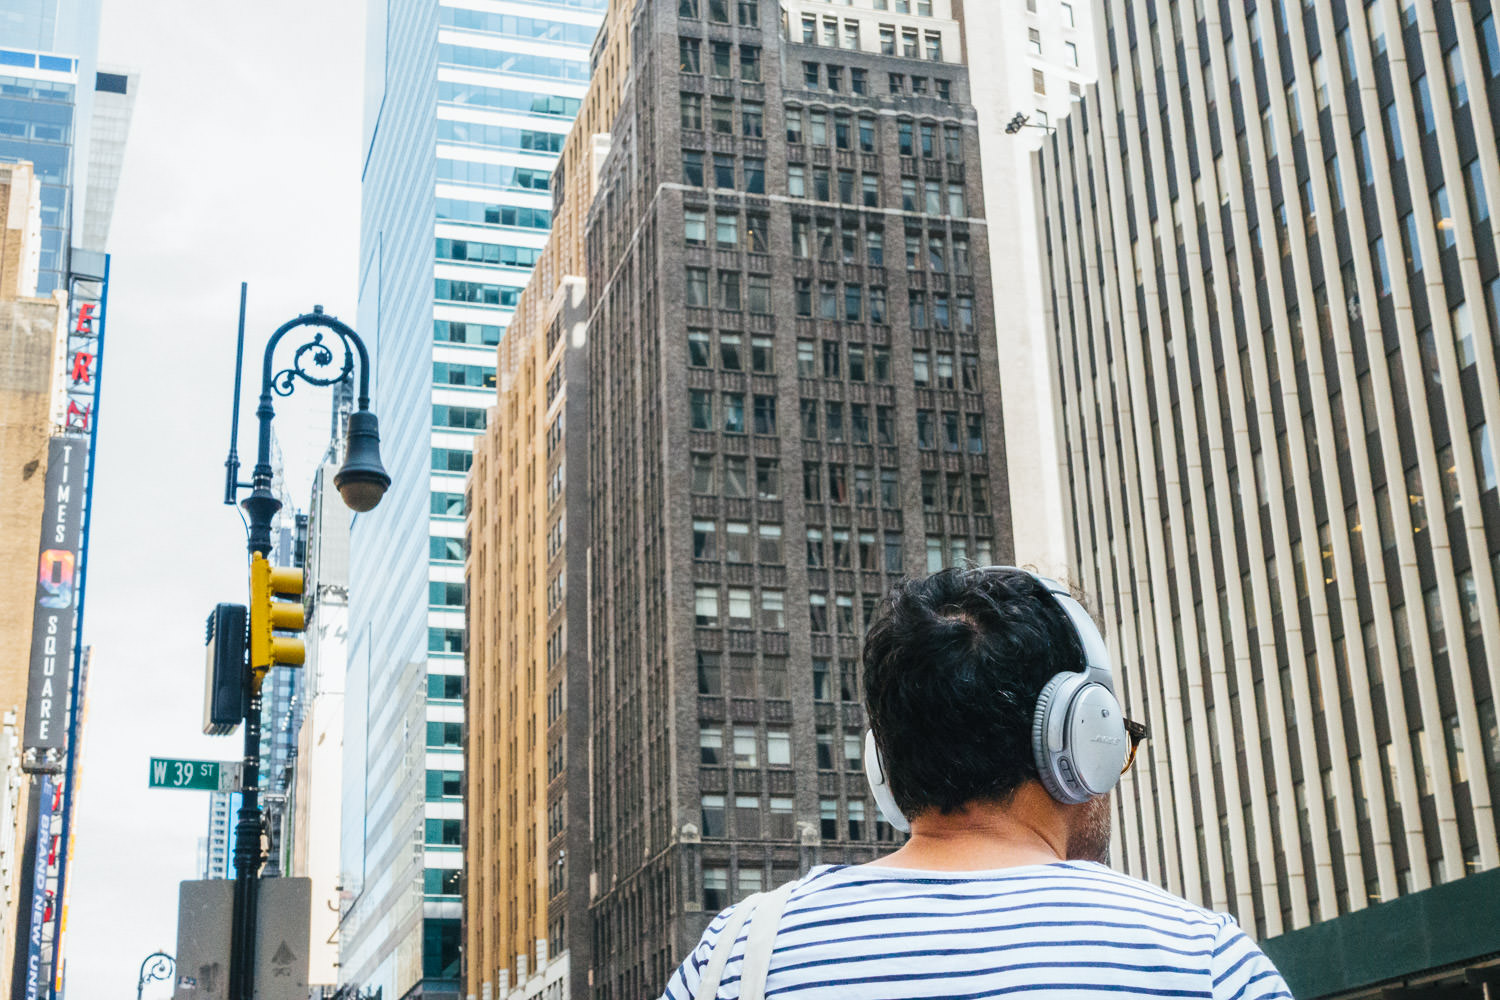 A man listens to headphones on the streets of NYC.